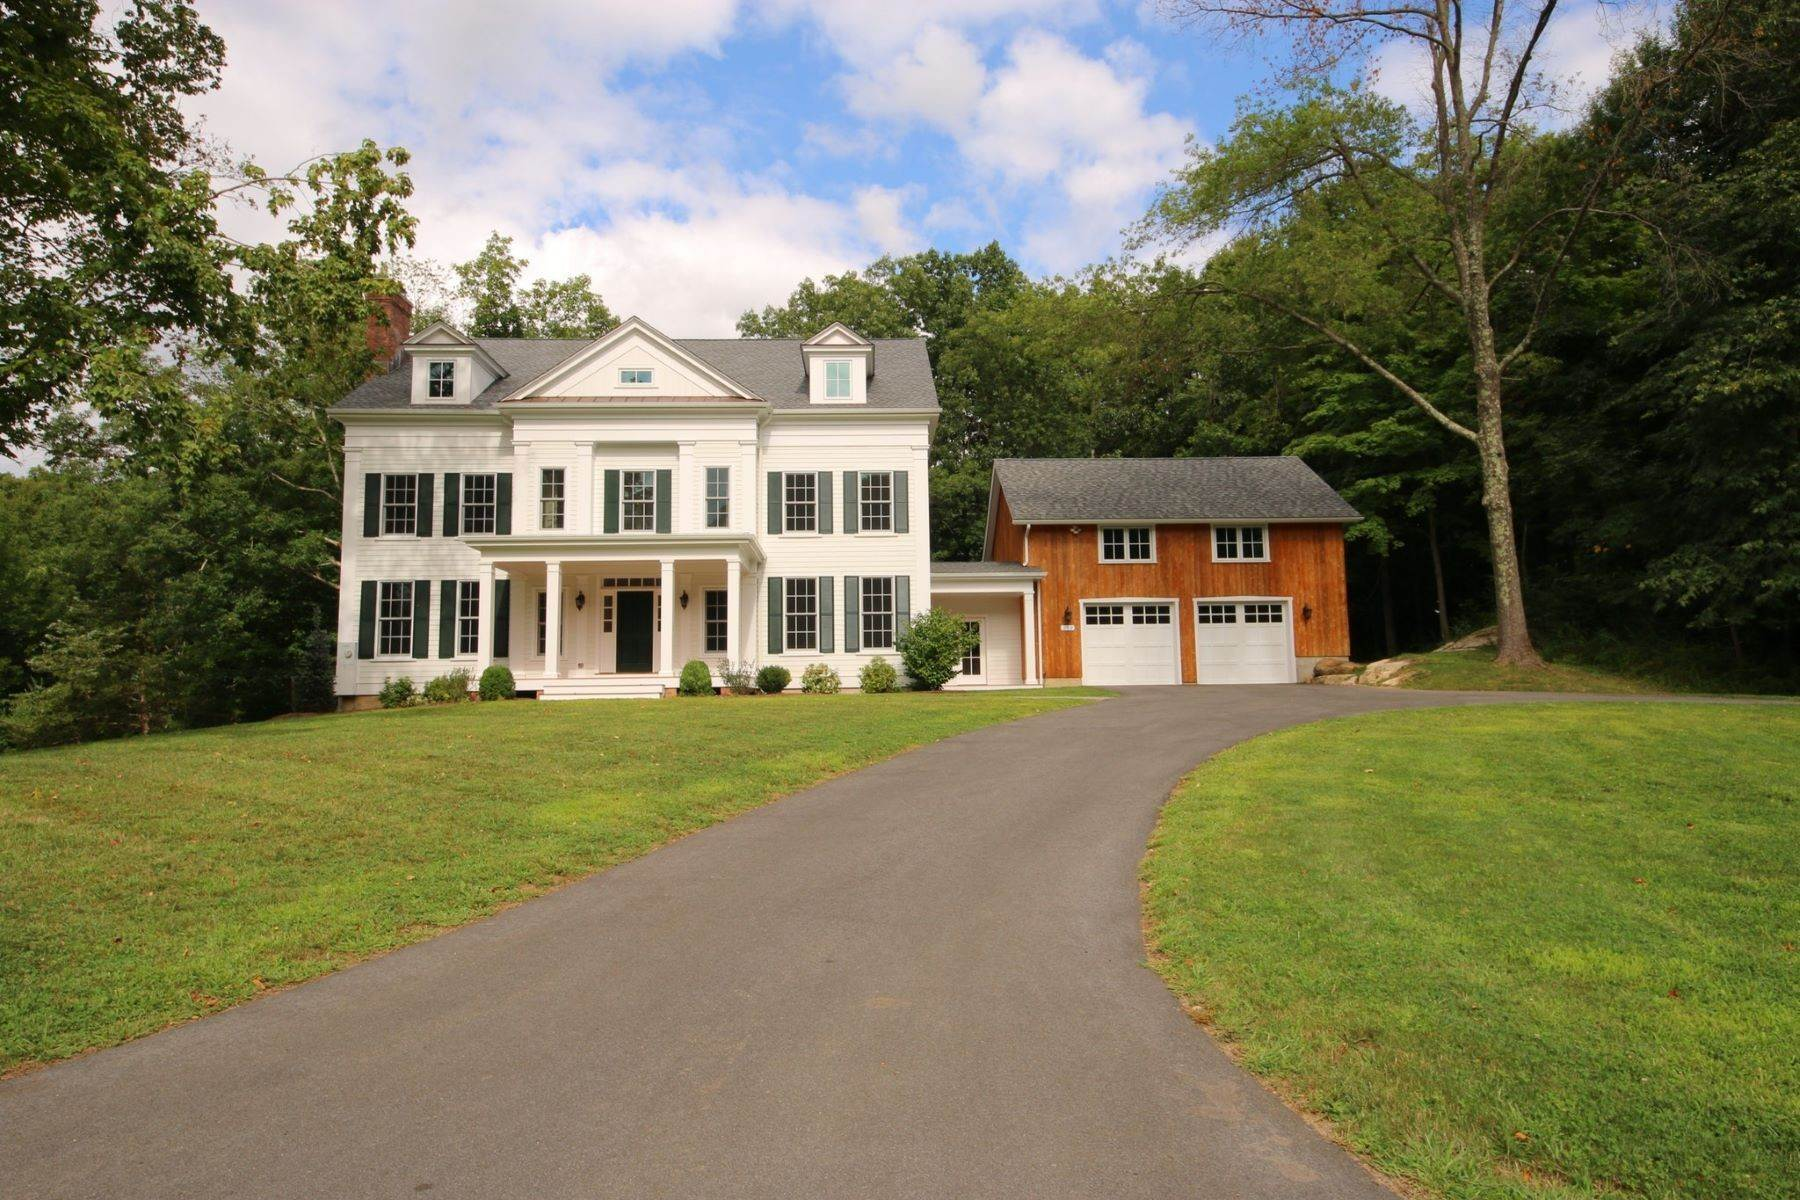 Single Family Homes for Sale at Custom New Construction 225 Bennetts Farm Road, Lot 6 Ridgefield, Connecticut 06877 United States